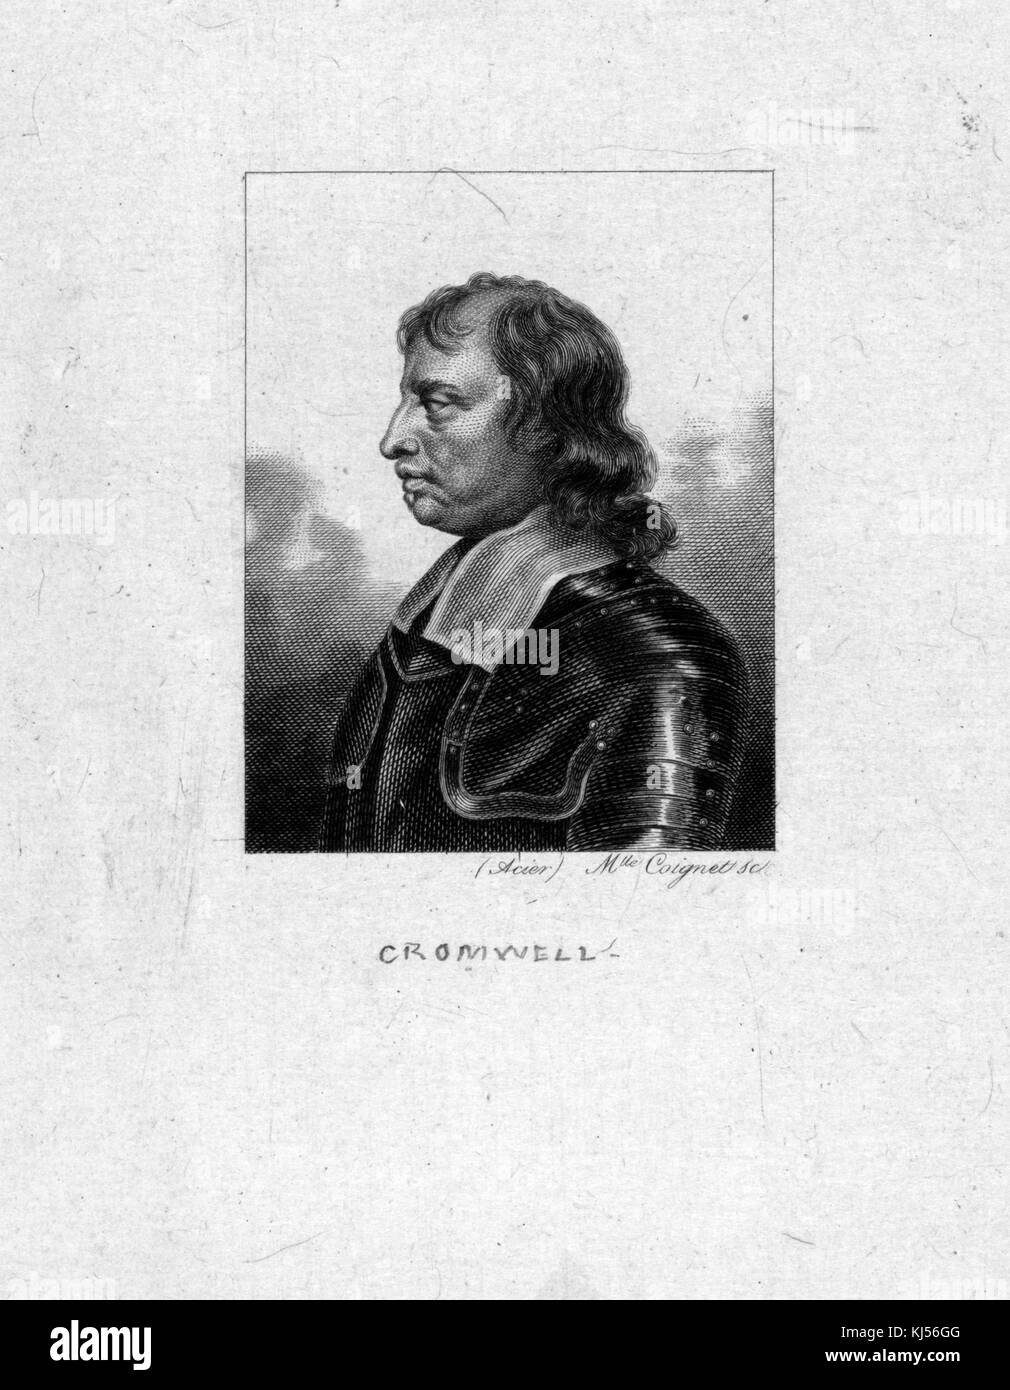 Engraved portrait of Oliver Cromwell, English military and political leader and later Lord Protector of the Commonwealth - Stock Image